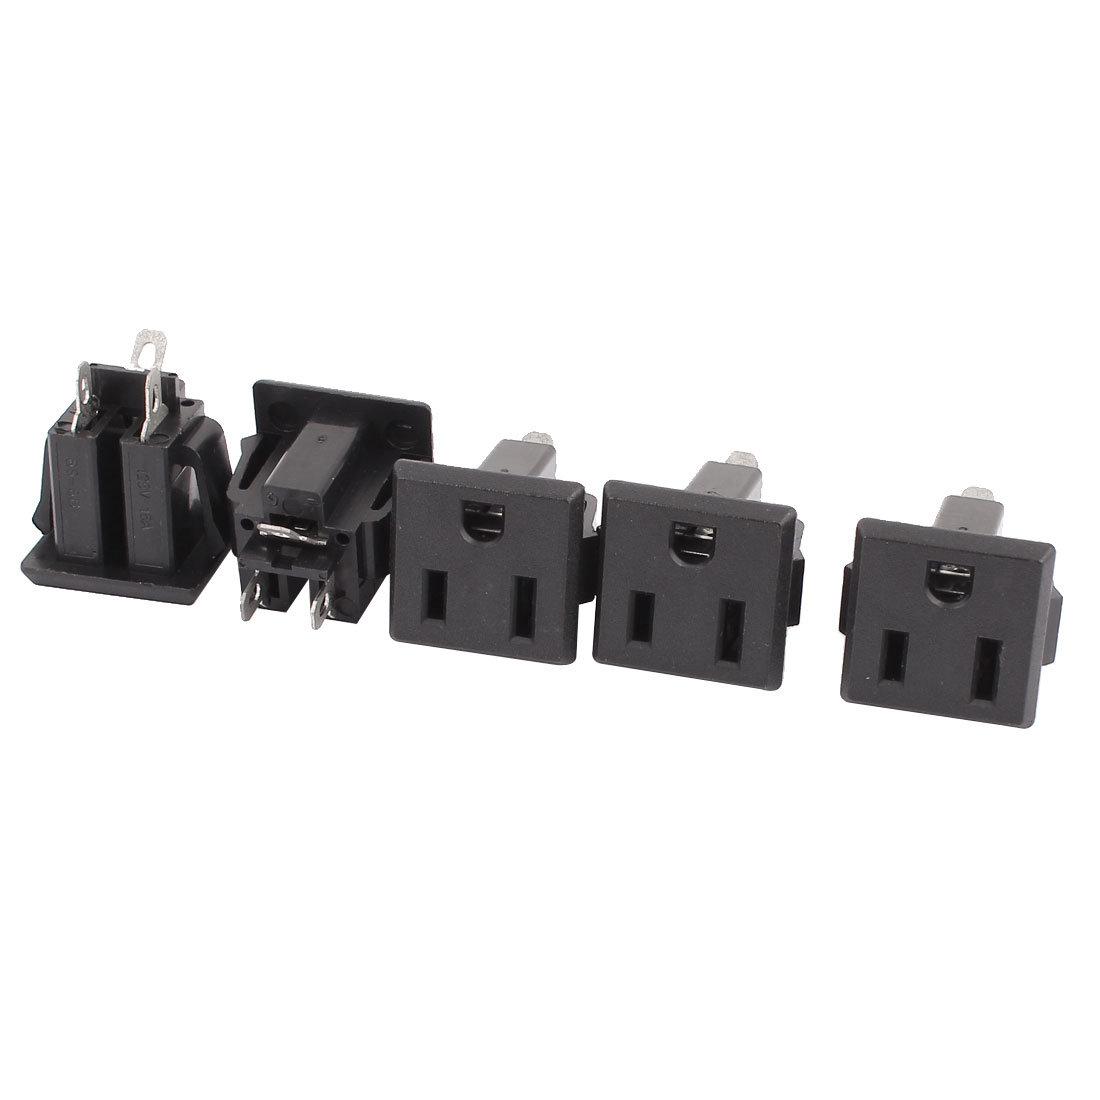 5 Pcs AC 125V US Outlet Panel Mount Power Rewiring Socket Black